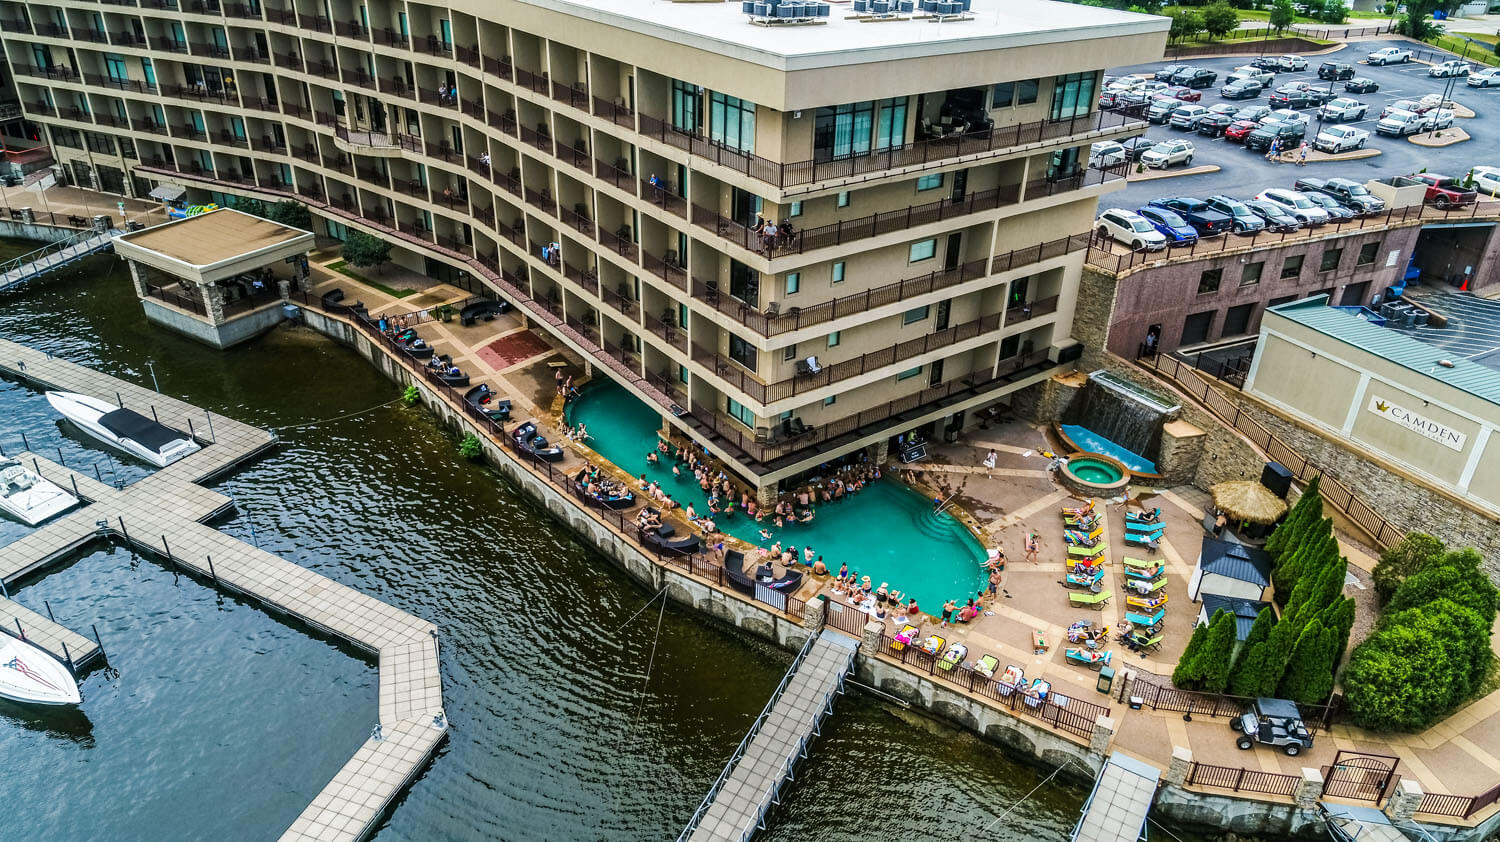 Aerial view of pool at camden on the lake resort